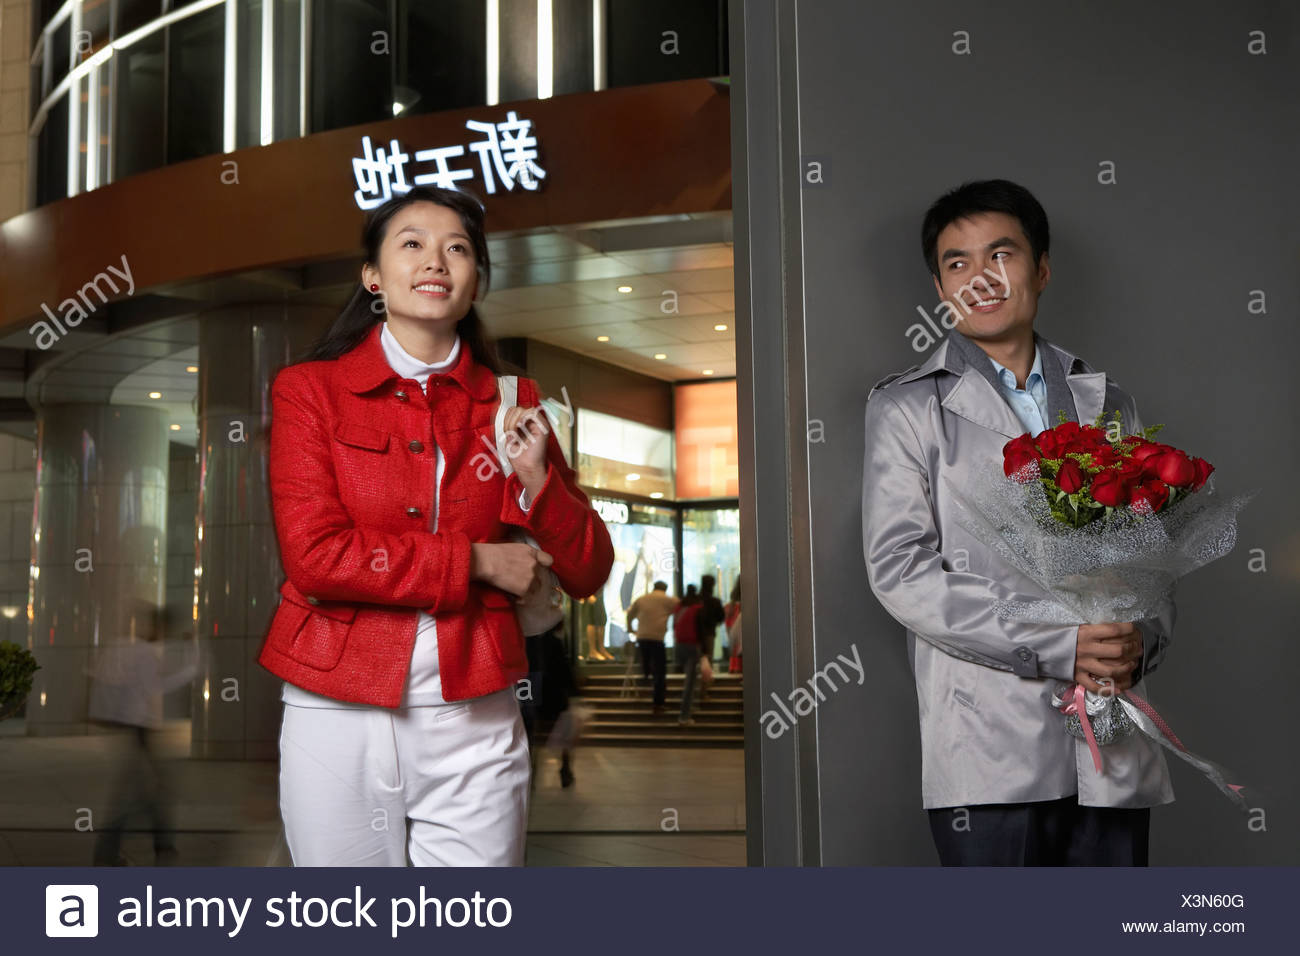 Young Man Holding Bunch Of Flowers And Meeting Girlfriend - Stock Image